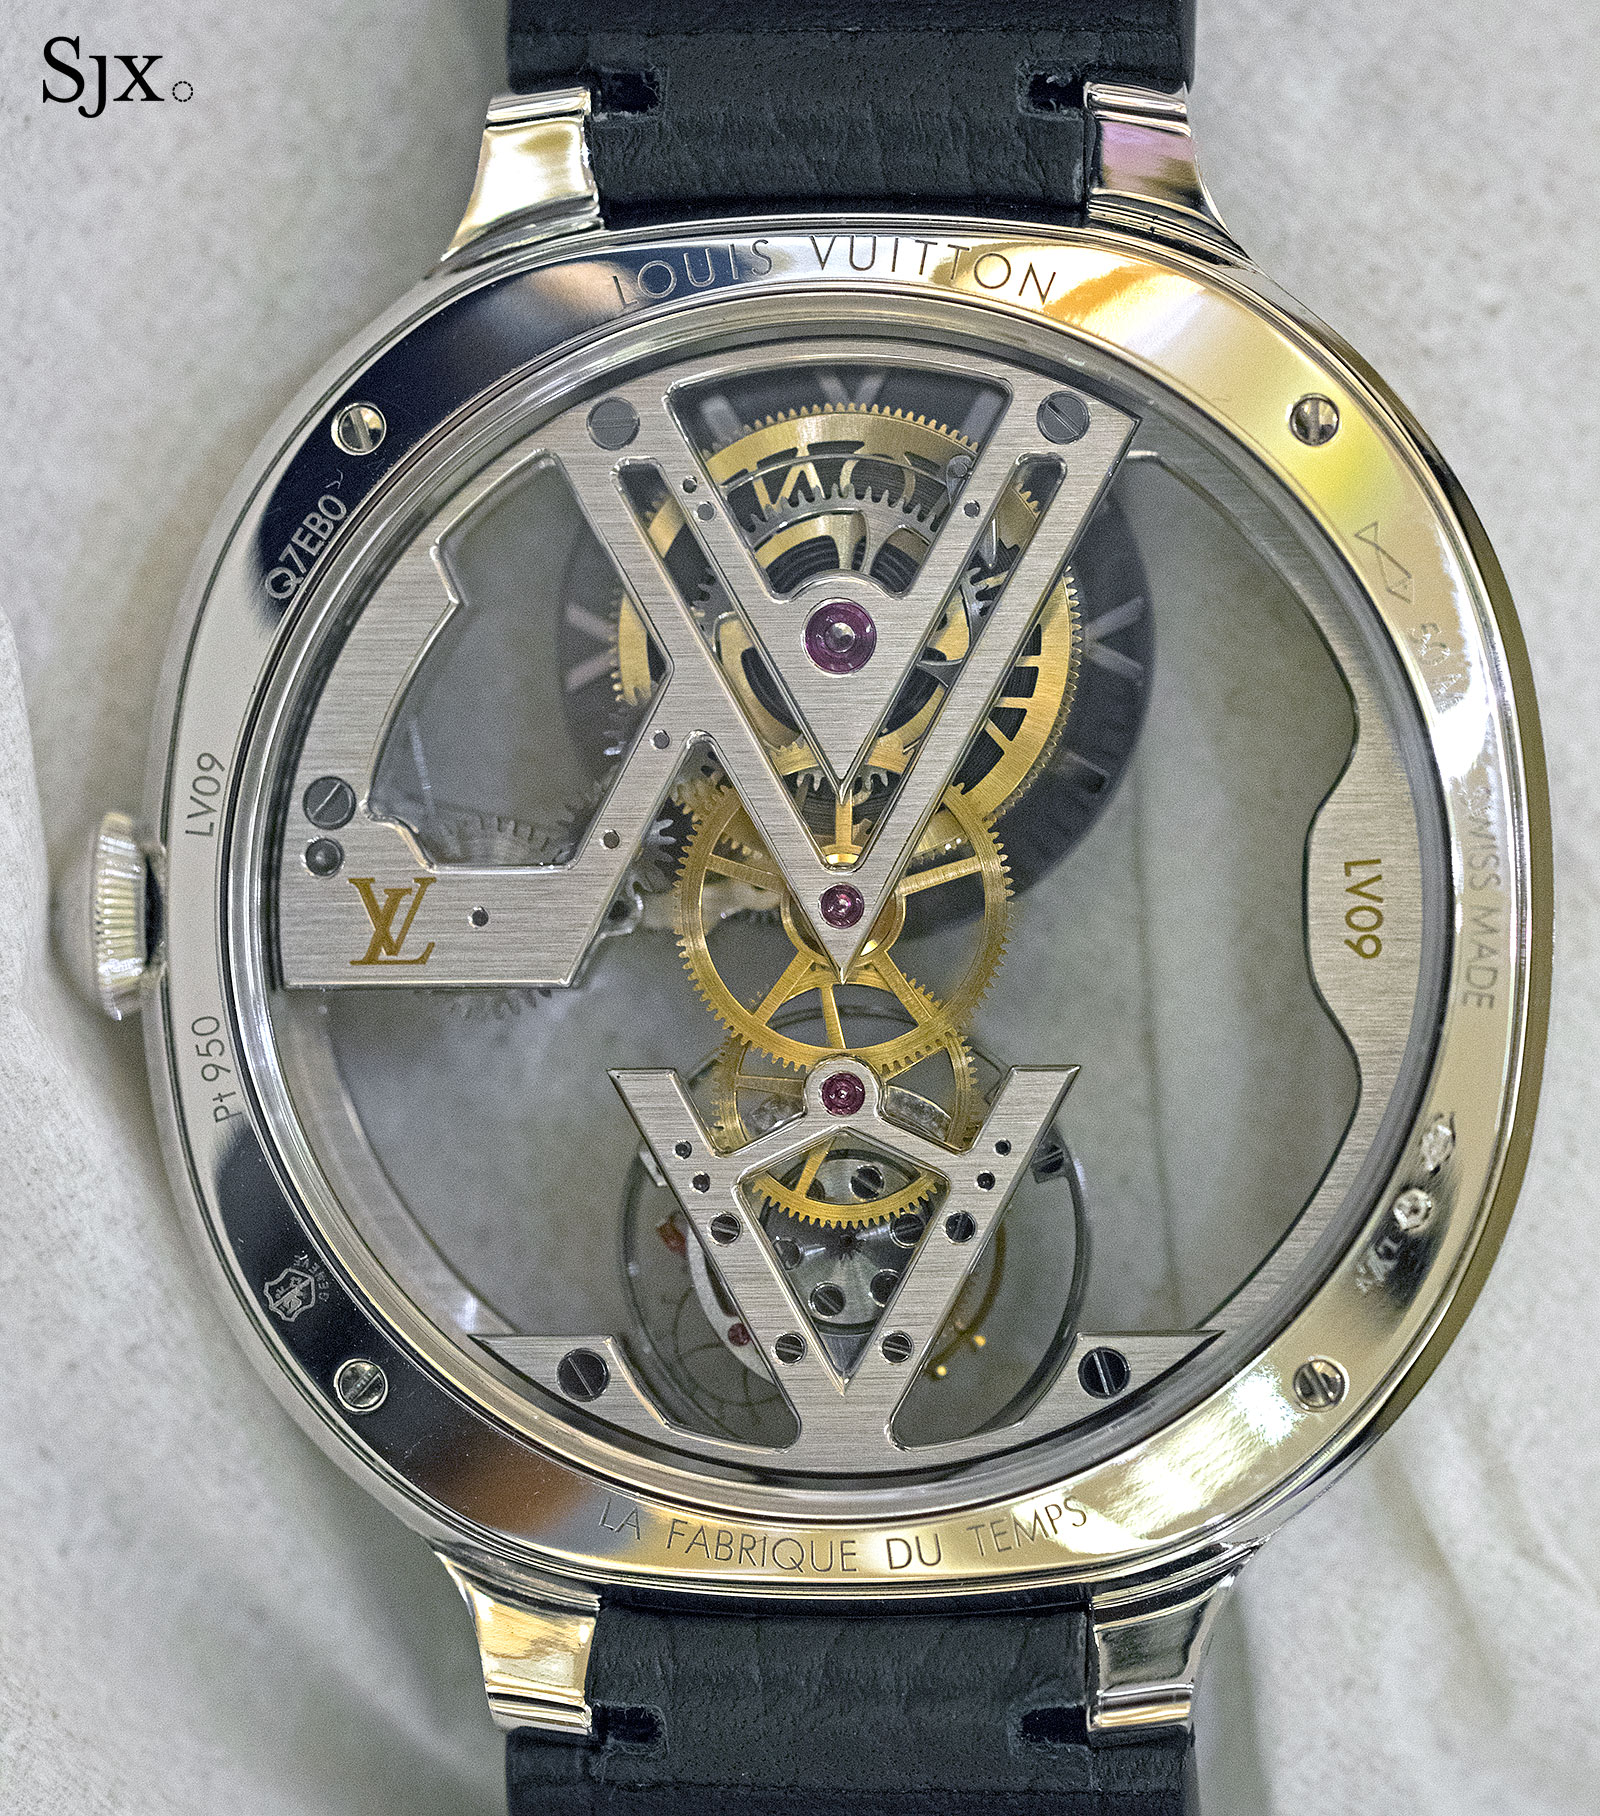 as include on stars jlc also watch mechanics focuses complex gazing much flying in men recognizing and women time love fro jaeger star adam astronomy that moon watches wrist anish lecoultre the